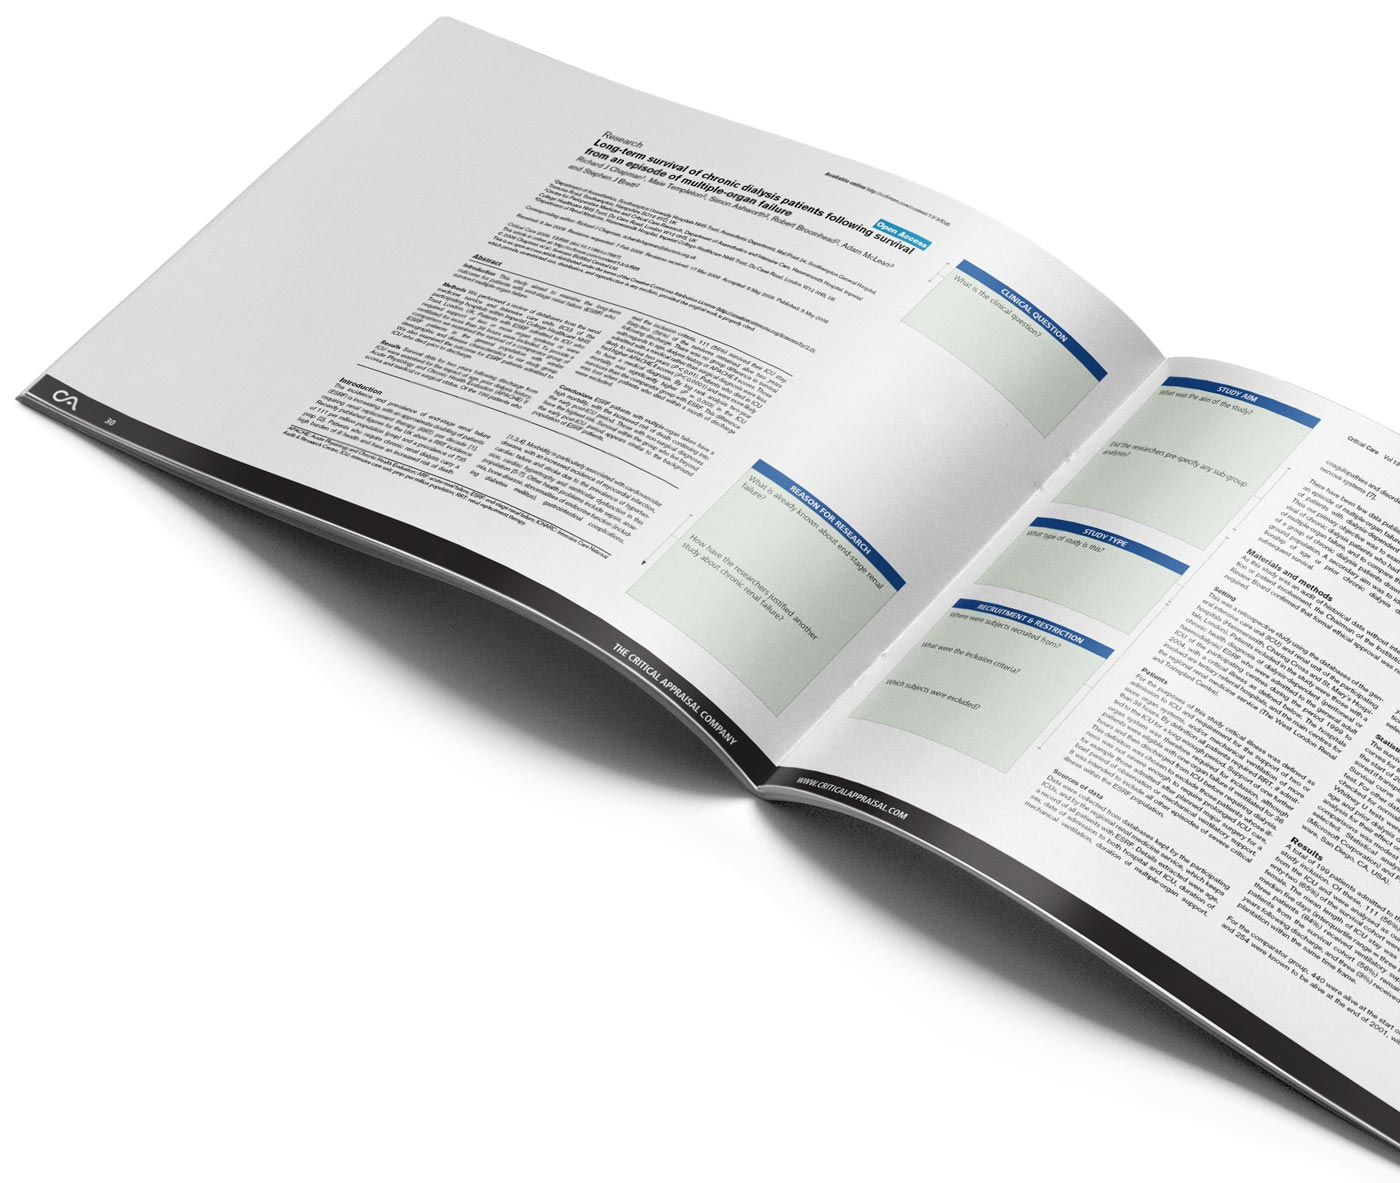 critical appraisal clinical papers workbook inside spread